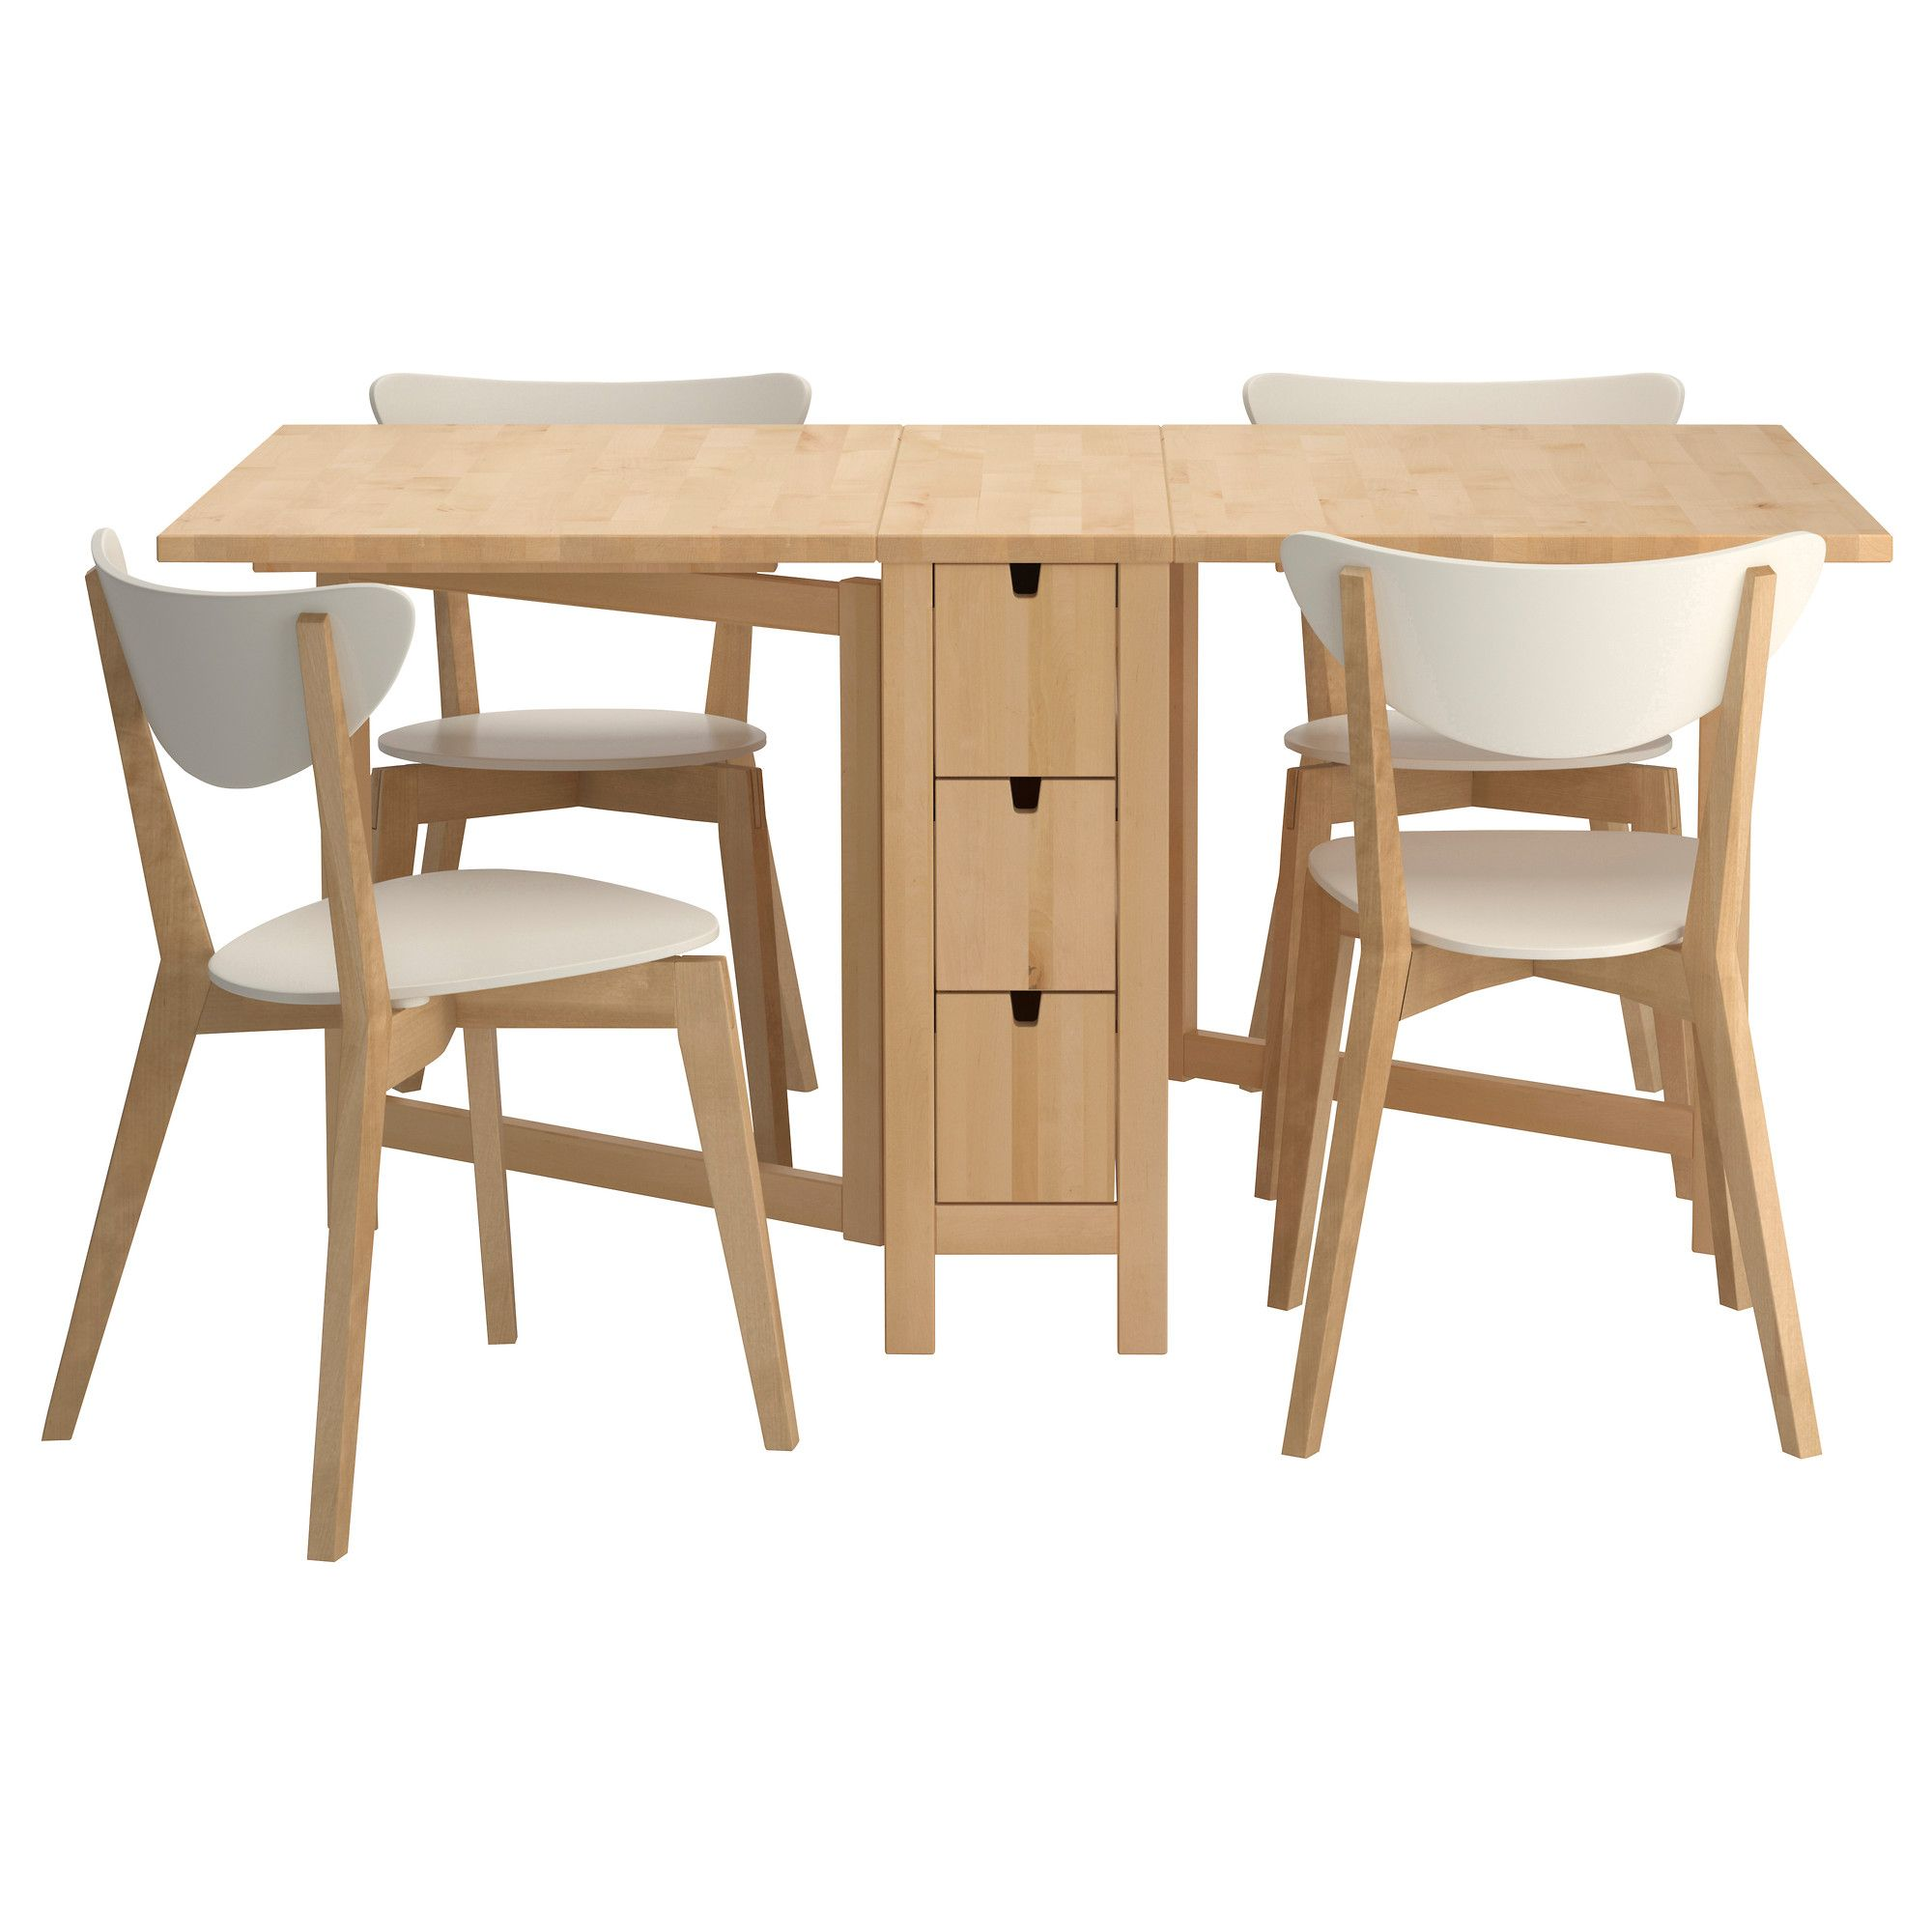 Norden nordmyra table and 4 chairs ikea for the love for Dining table and chairs